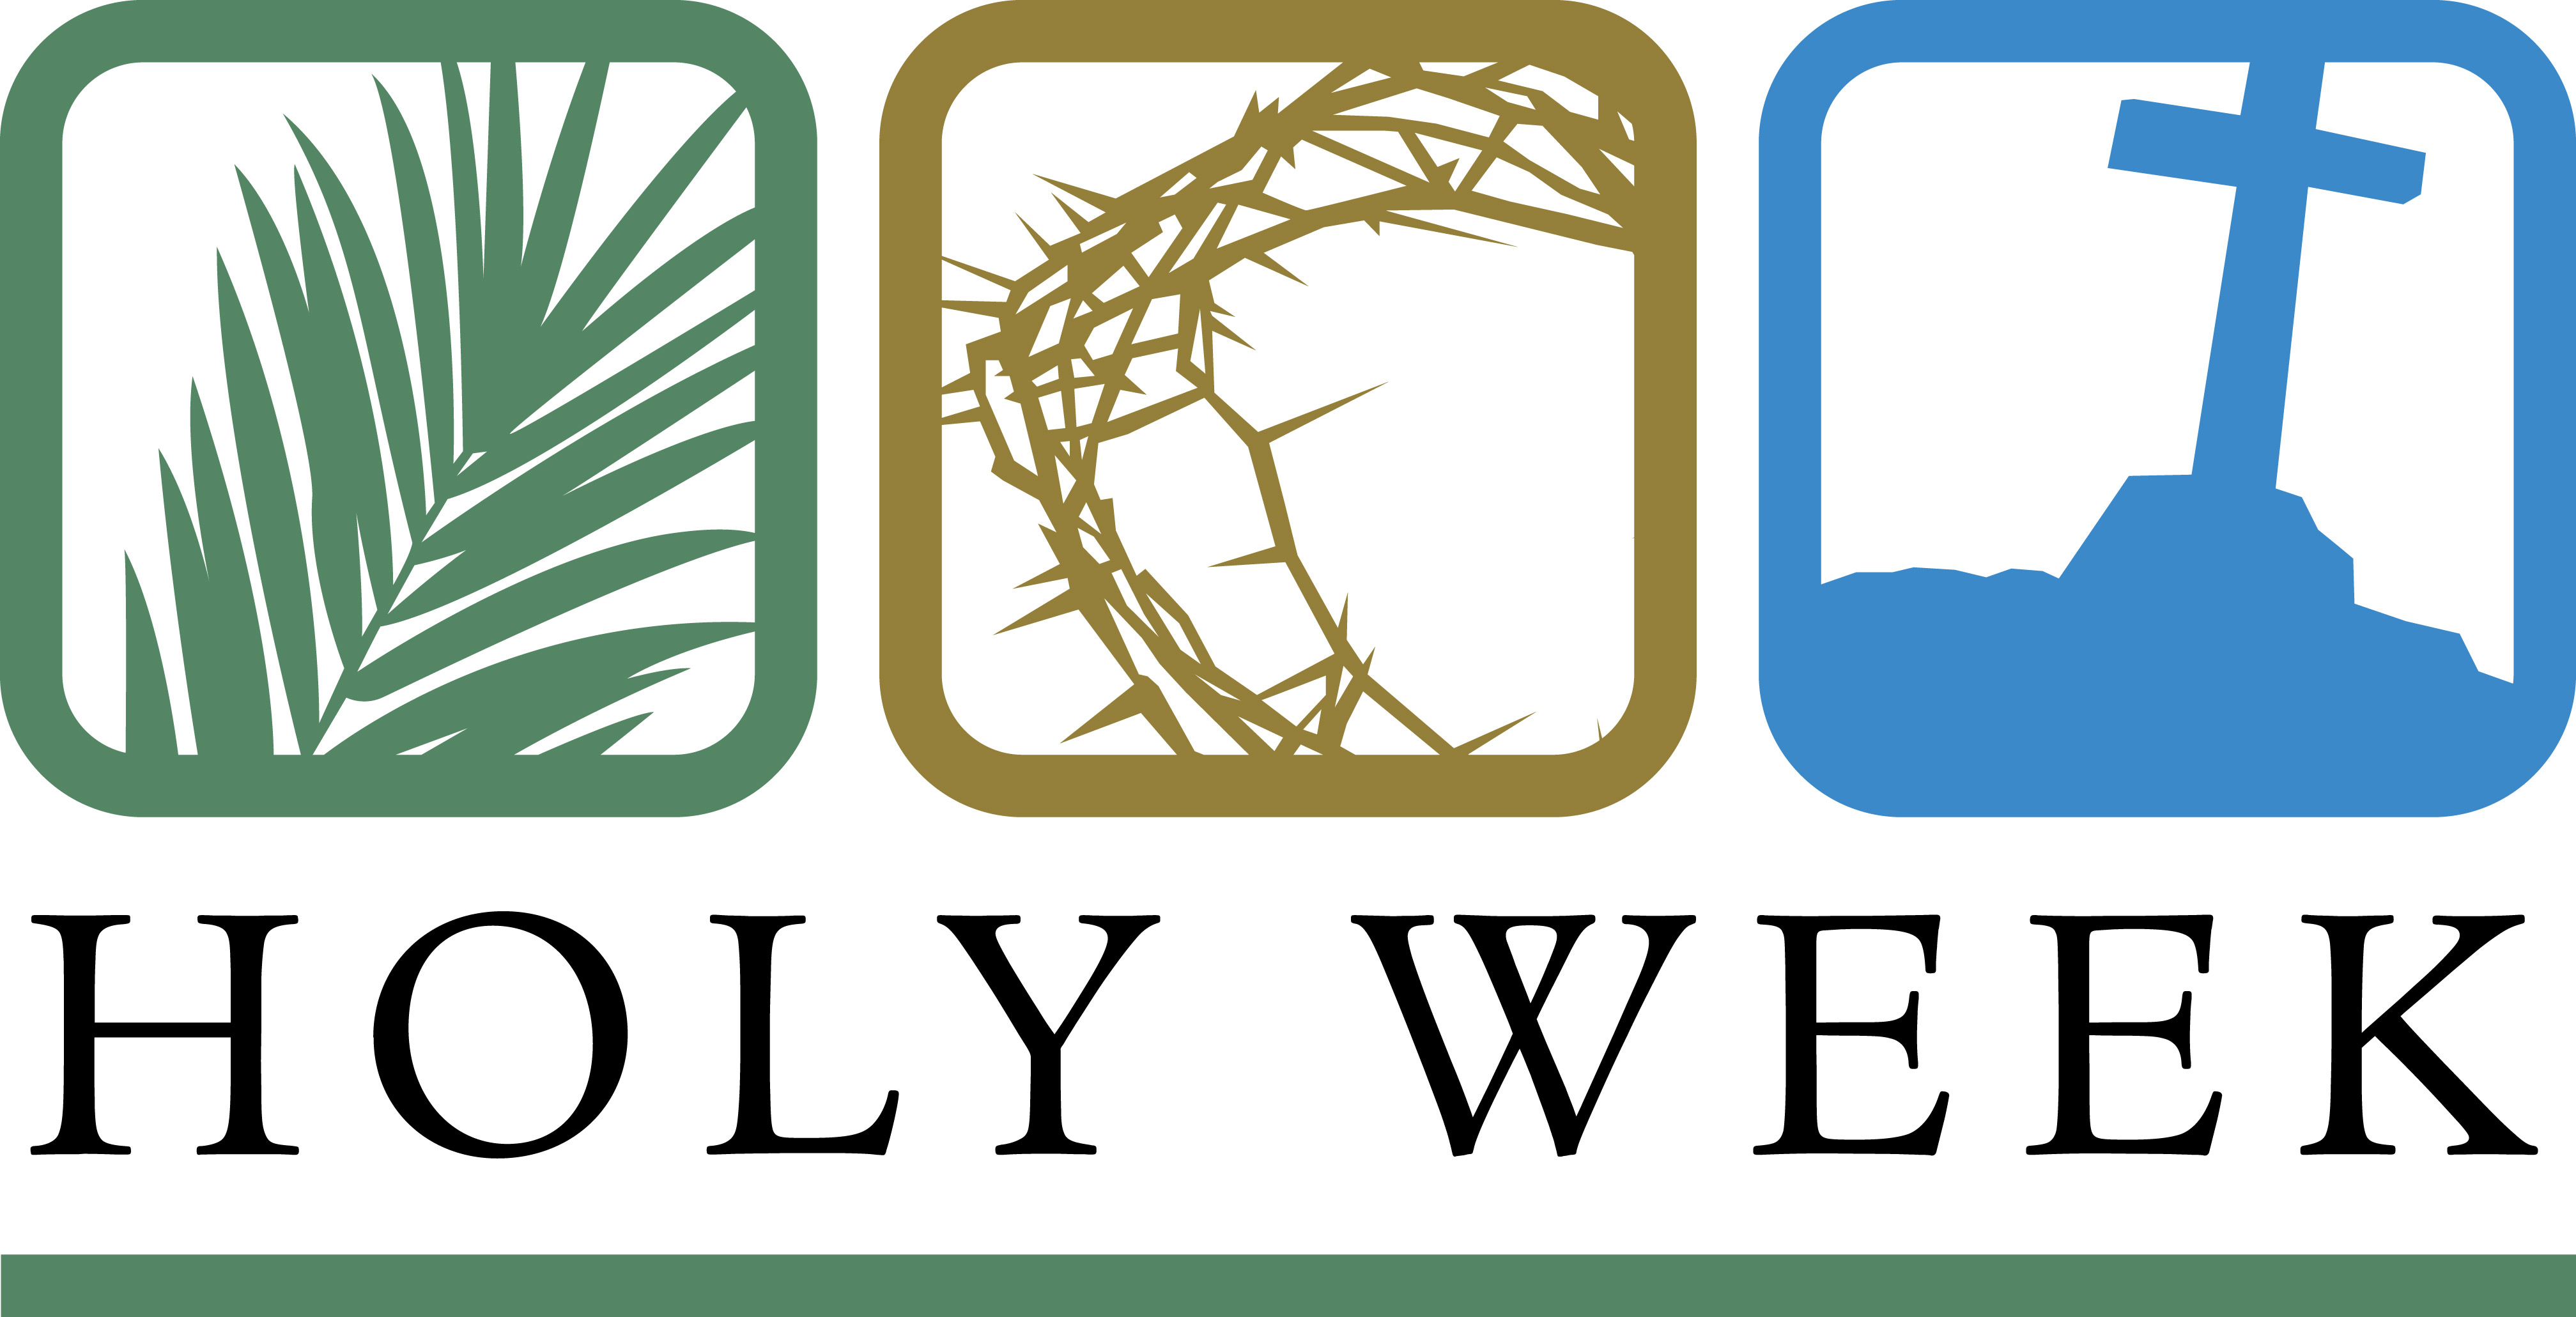 What Happened During Holy Week? - FBC Durham